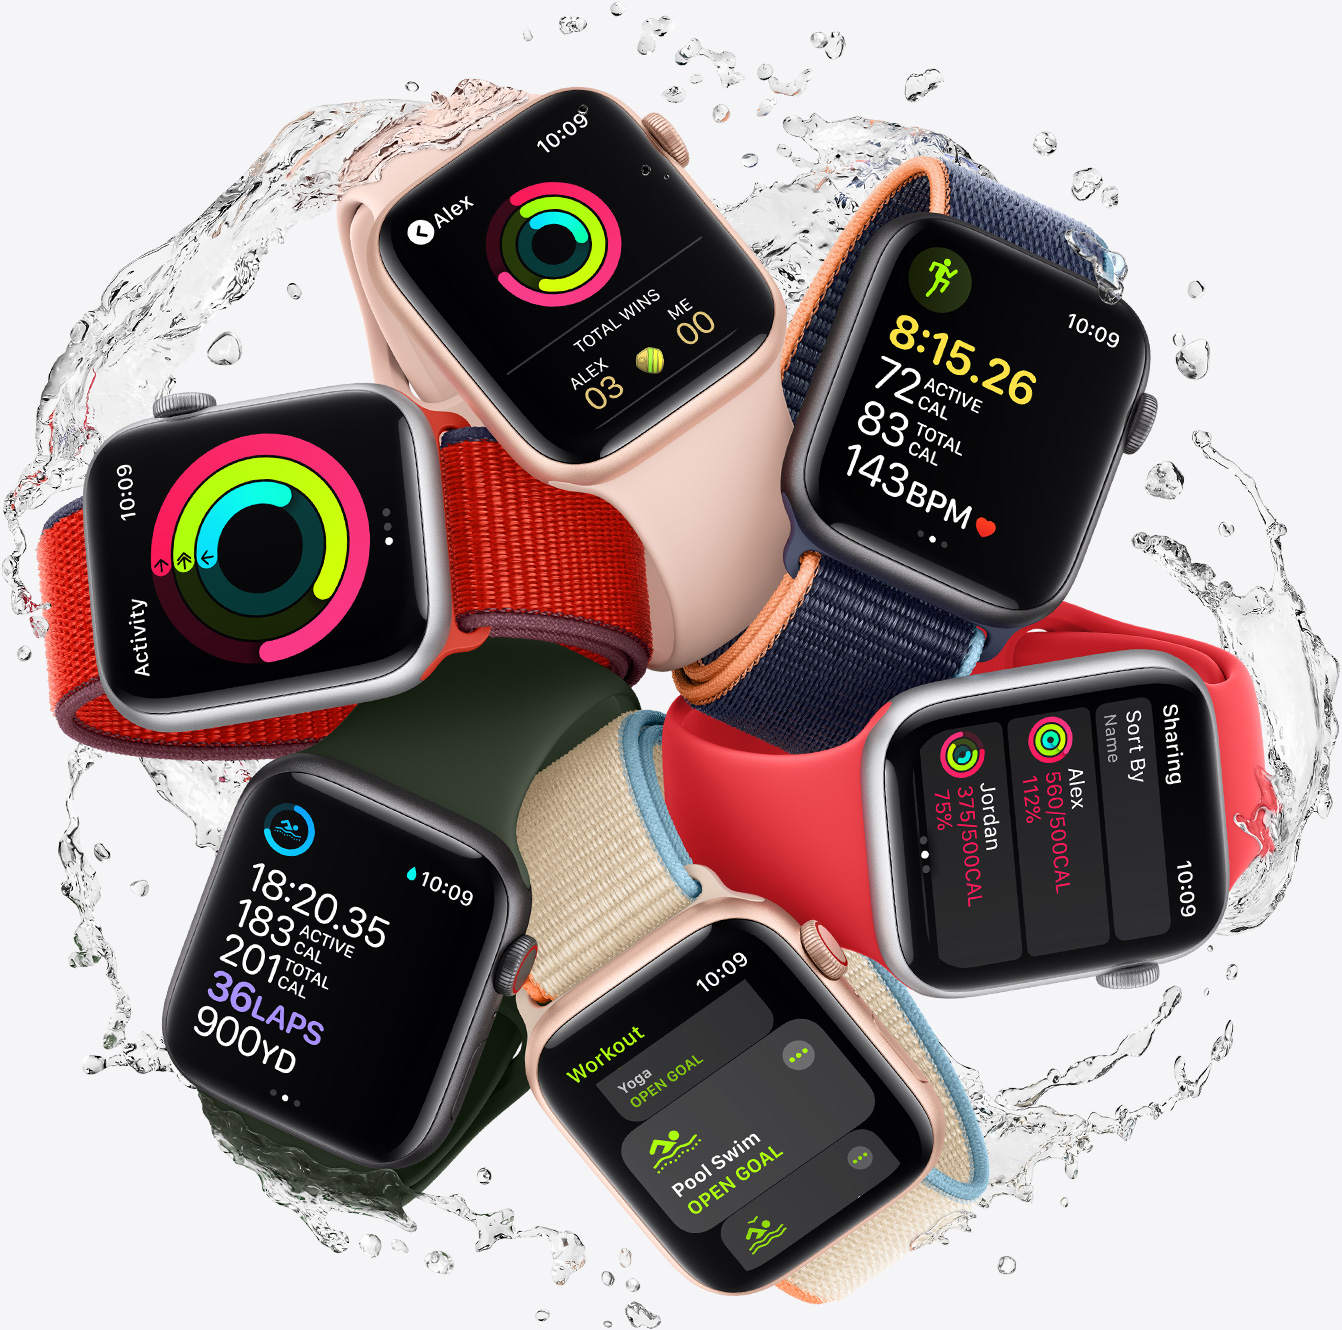 https://www.apple.com/v/apple-watch-se/c/images/overview/new-lengths/new_heights__ckzn8fs232oi_large.jpg